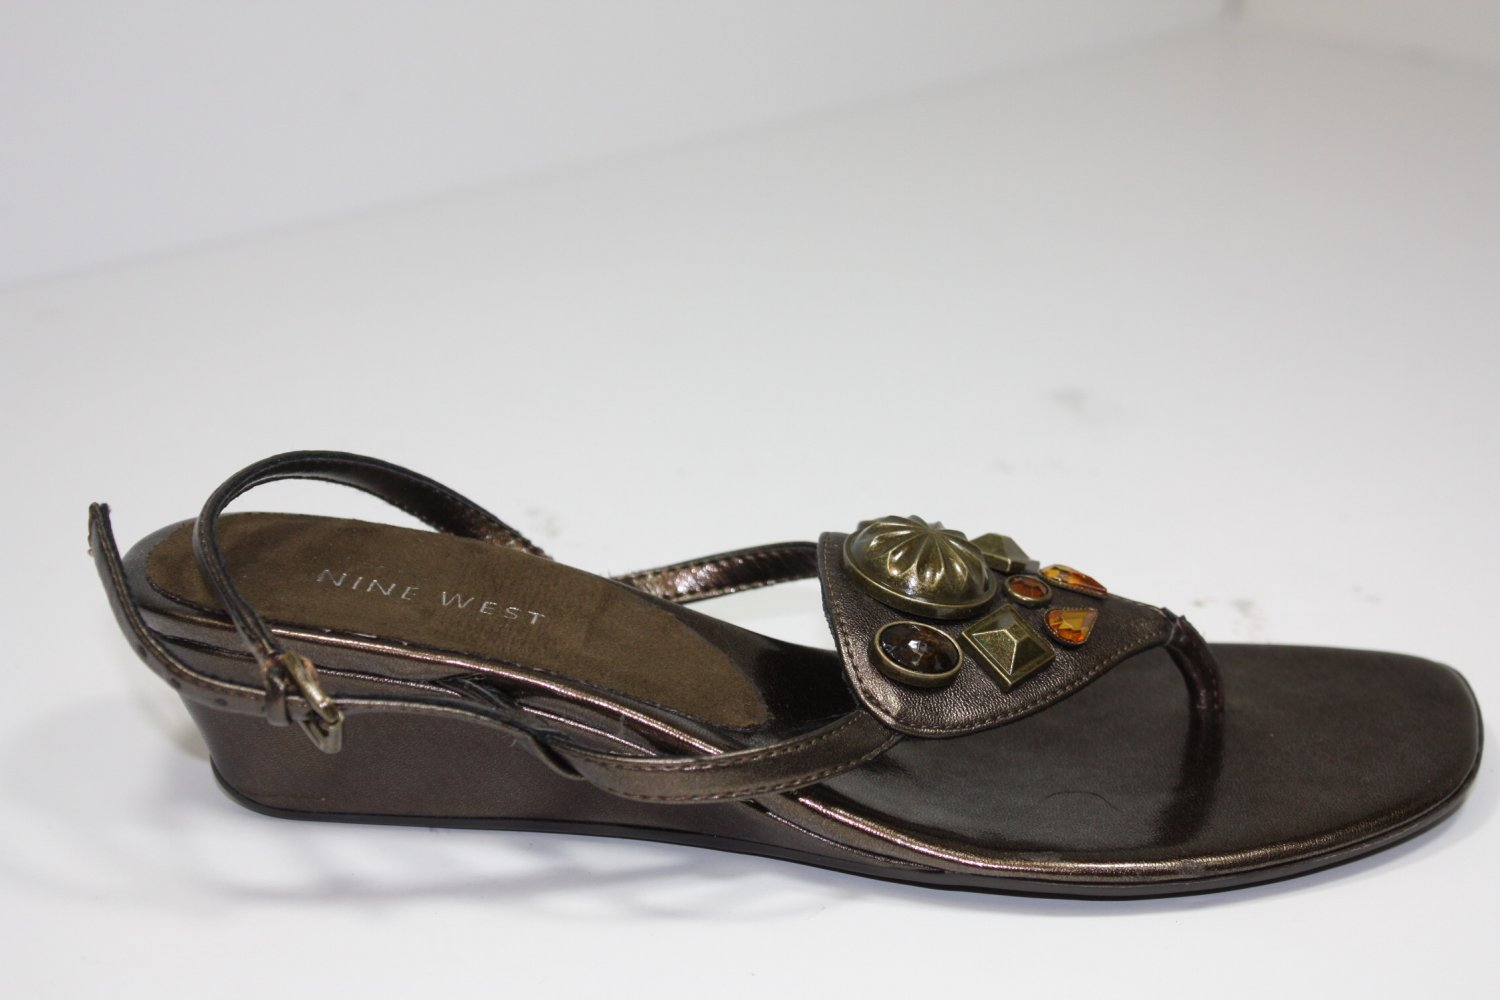 Nine West Lasoya Sandals Rustcopper Shoes US 7 $69